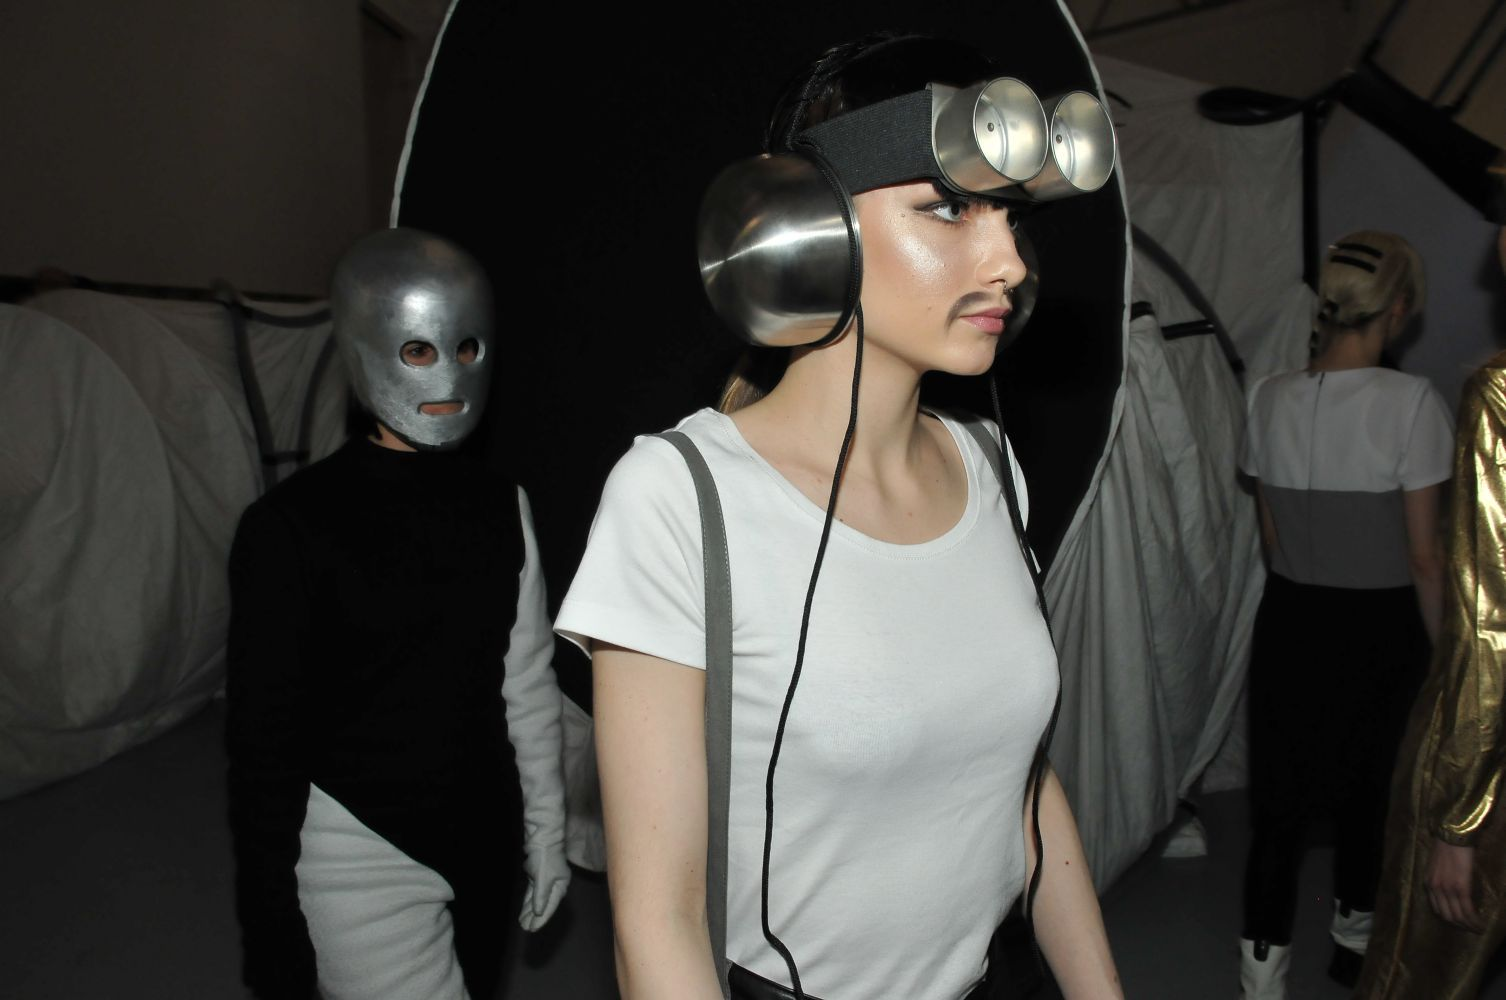 Larger Than Life Space Suit Houses Fashion Show: 003580.jpg